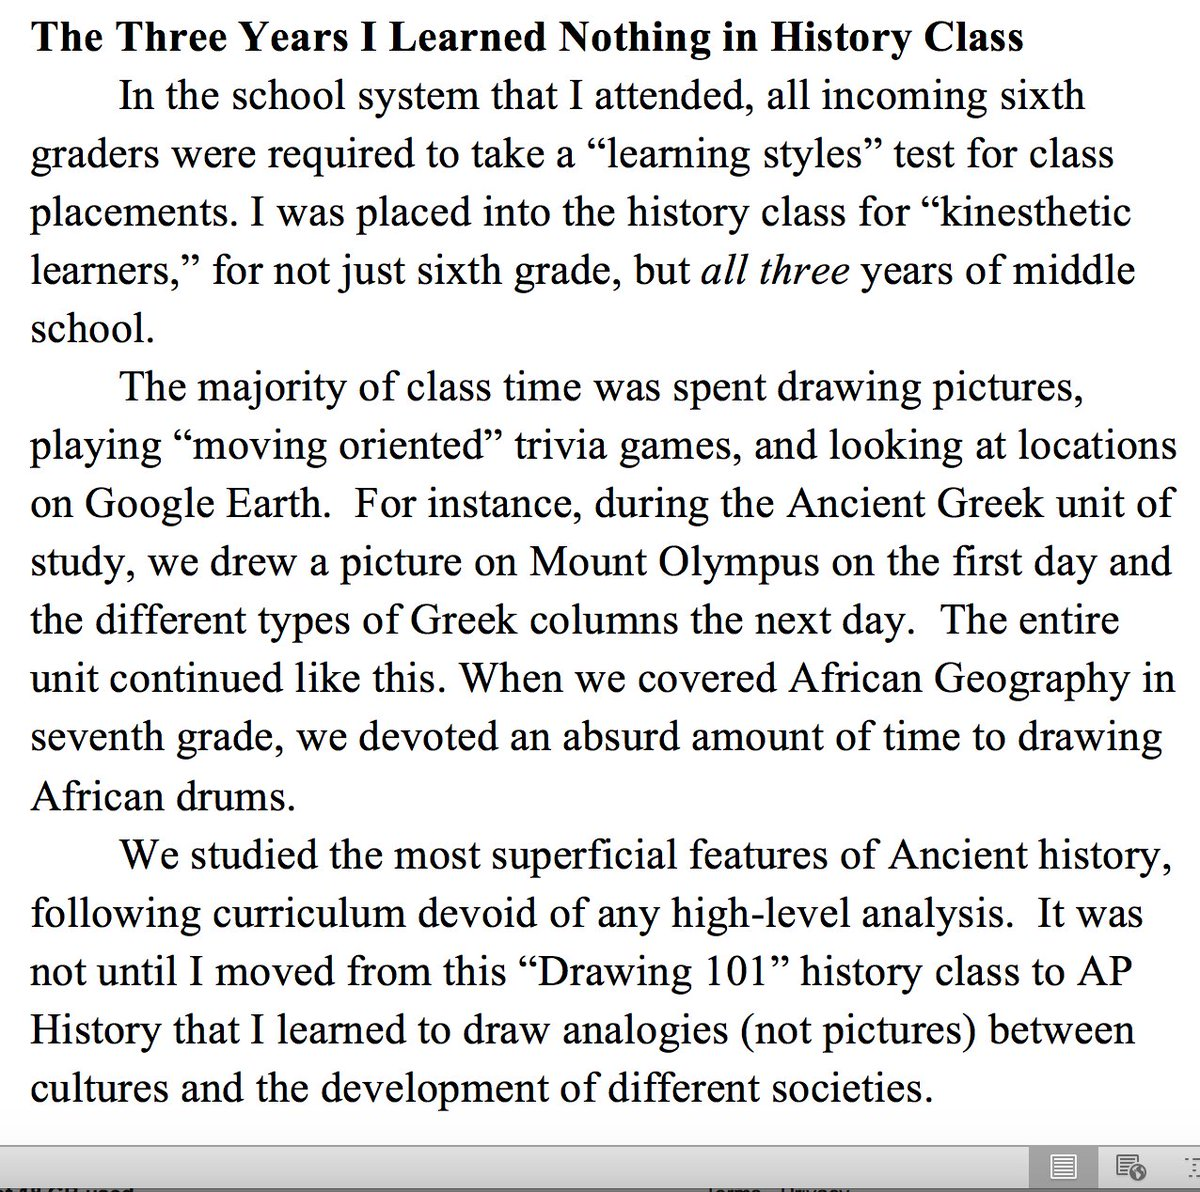 English Composition Essay Learning Styles Do Real Damage To Learning One Of My Students Wrote An Essay  About Learning History By Drawing And Moving Around For Three Years After   Essay Writing Paper also English Literature Essay Questions Nate Kornell On Twitter Learning Styles Do Real Damage To Learning  English Essay Examples